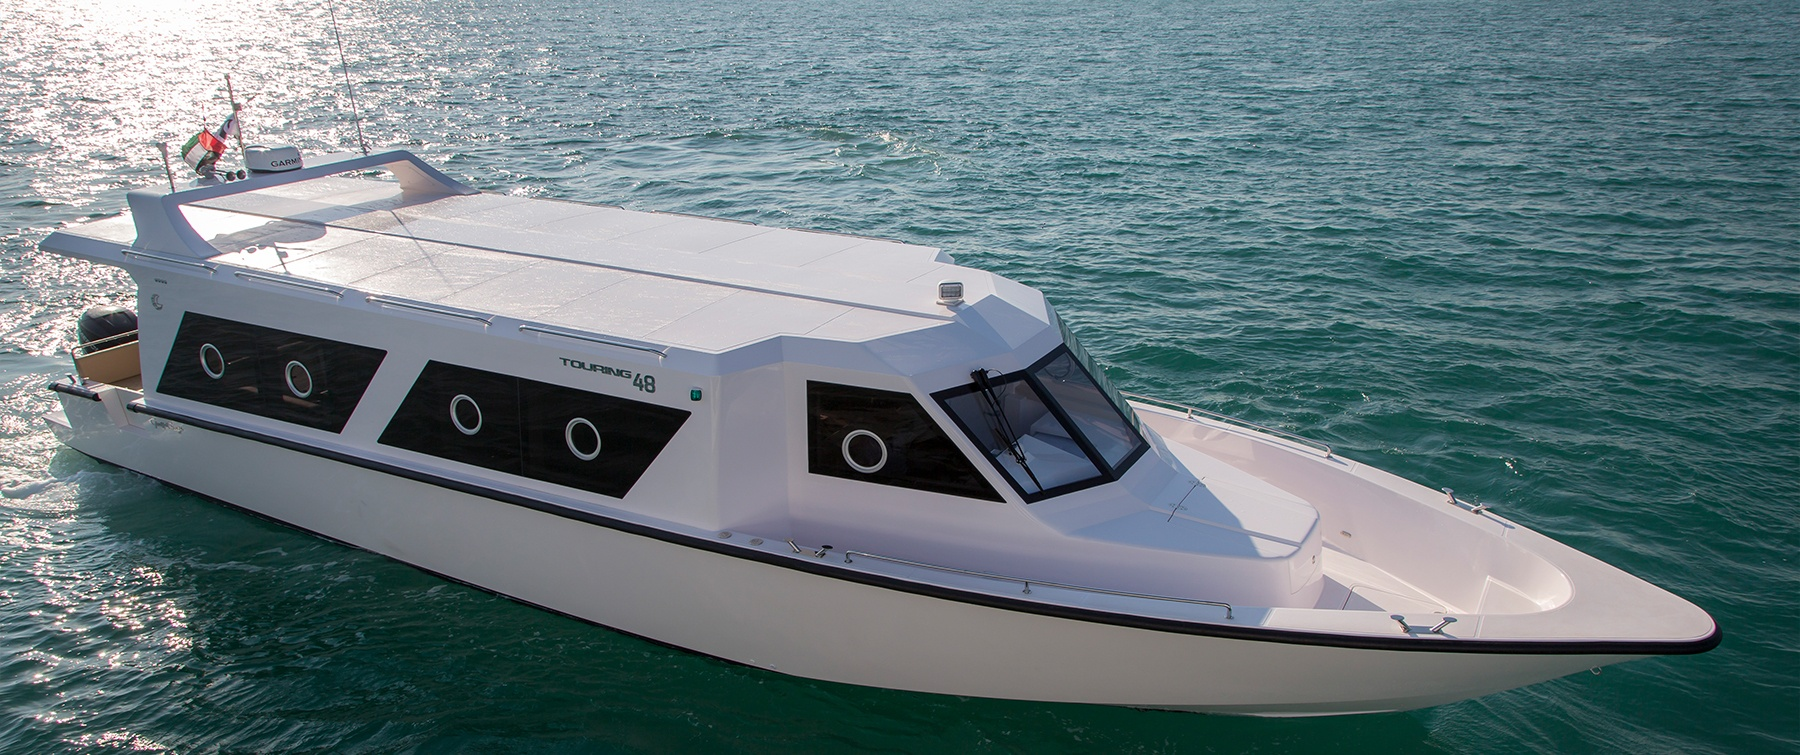 Exterior of the Touring 48 by Gulf Craft, UAE